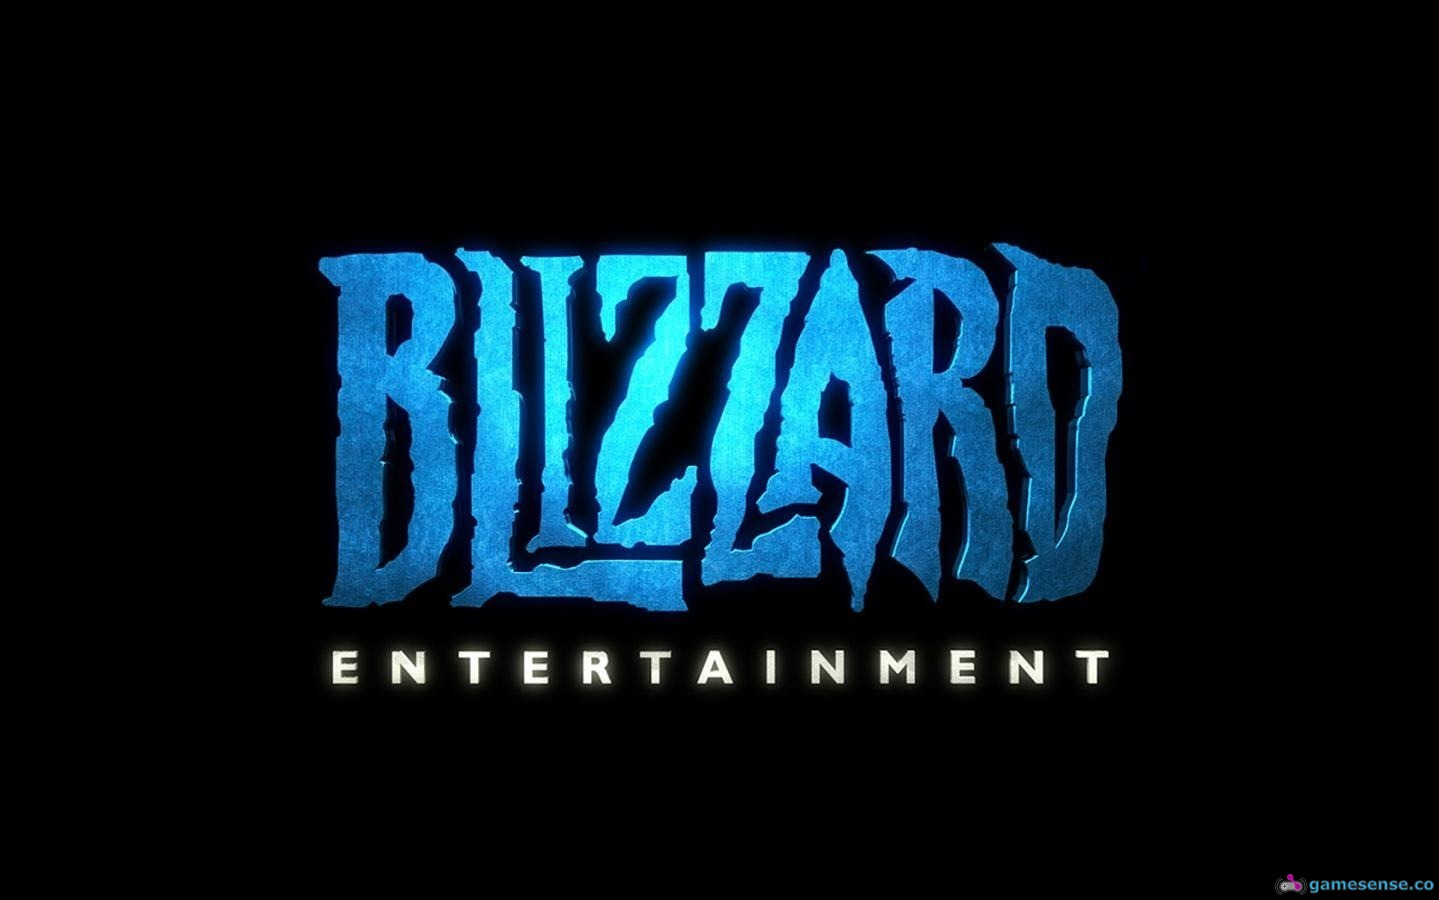 Blizzard Entertainment publisher